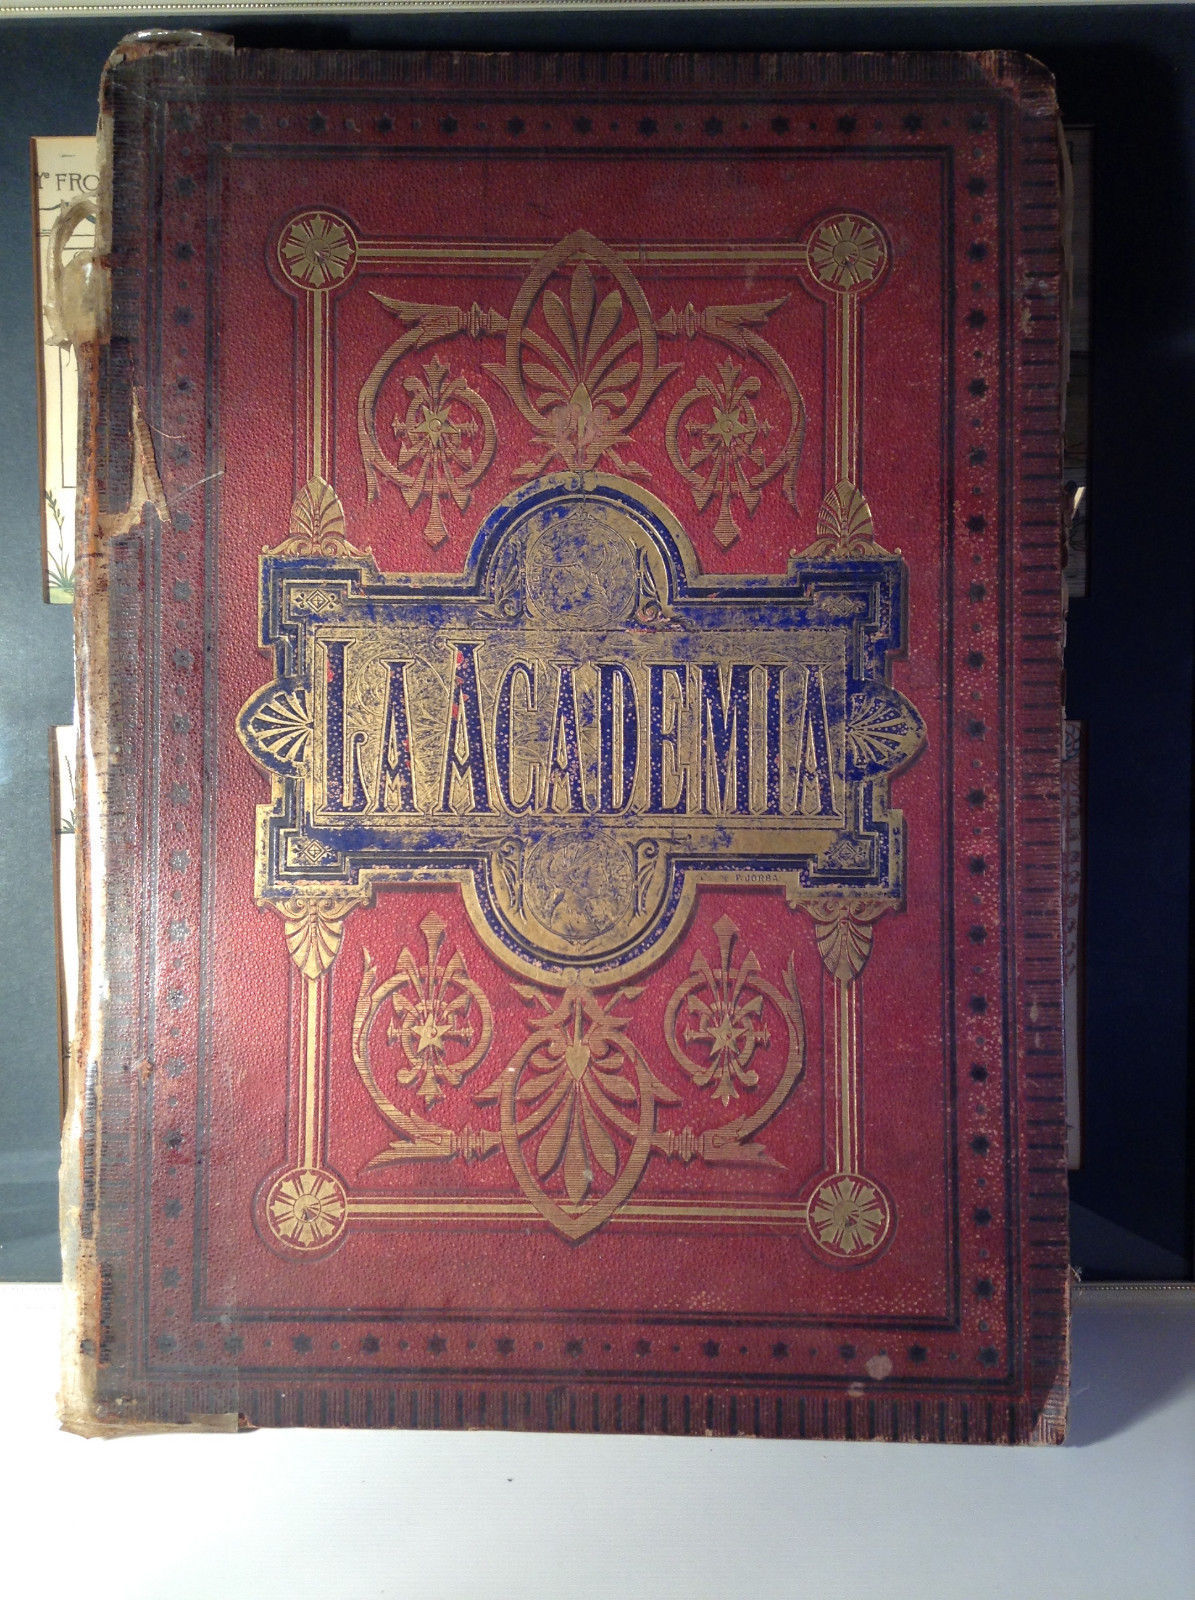 Red L Academia 1877 Spanish Book Appears to be Encyclopedia or Reference Book